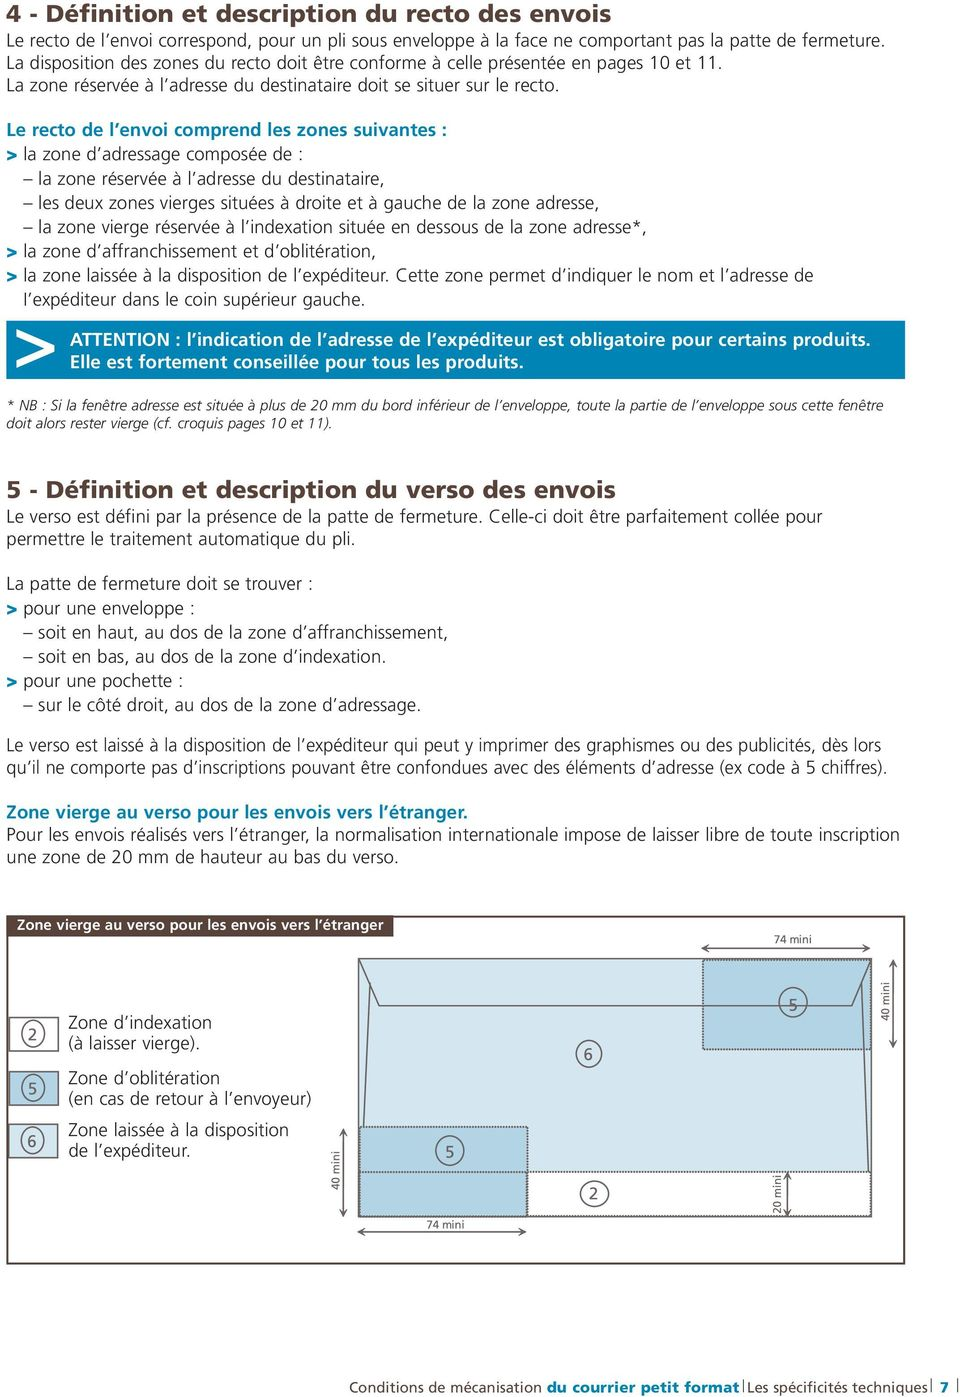 Conditions De Mécanisation Du Courrier Petit Format Pdf